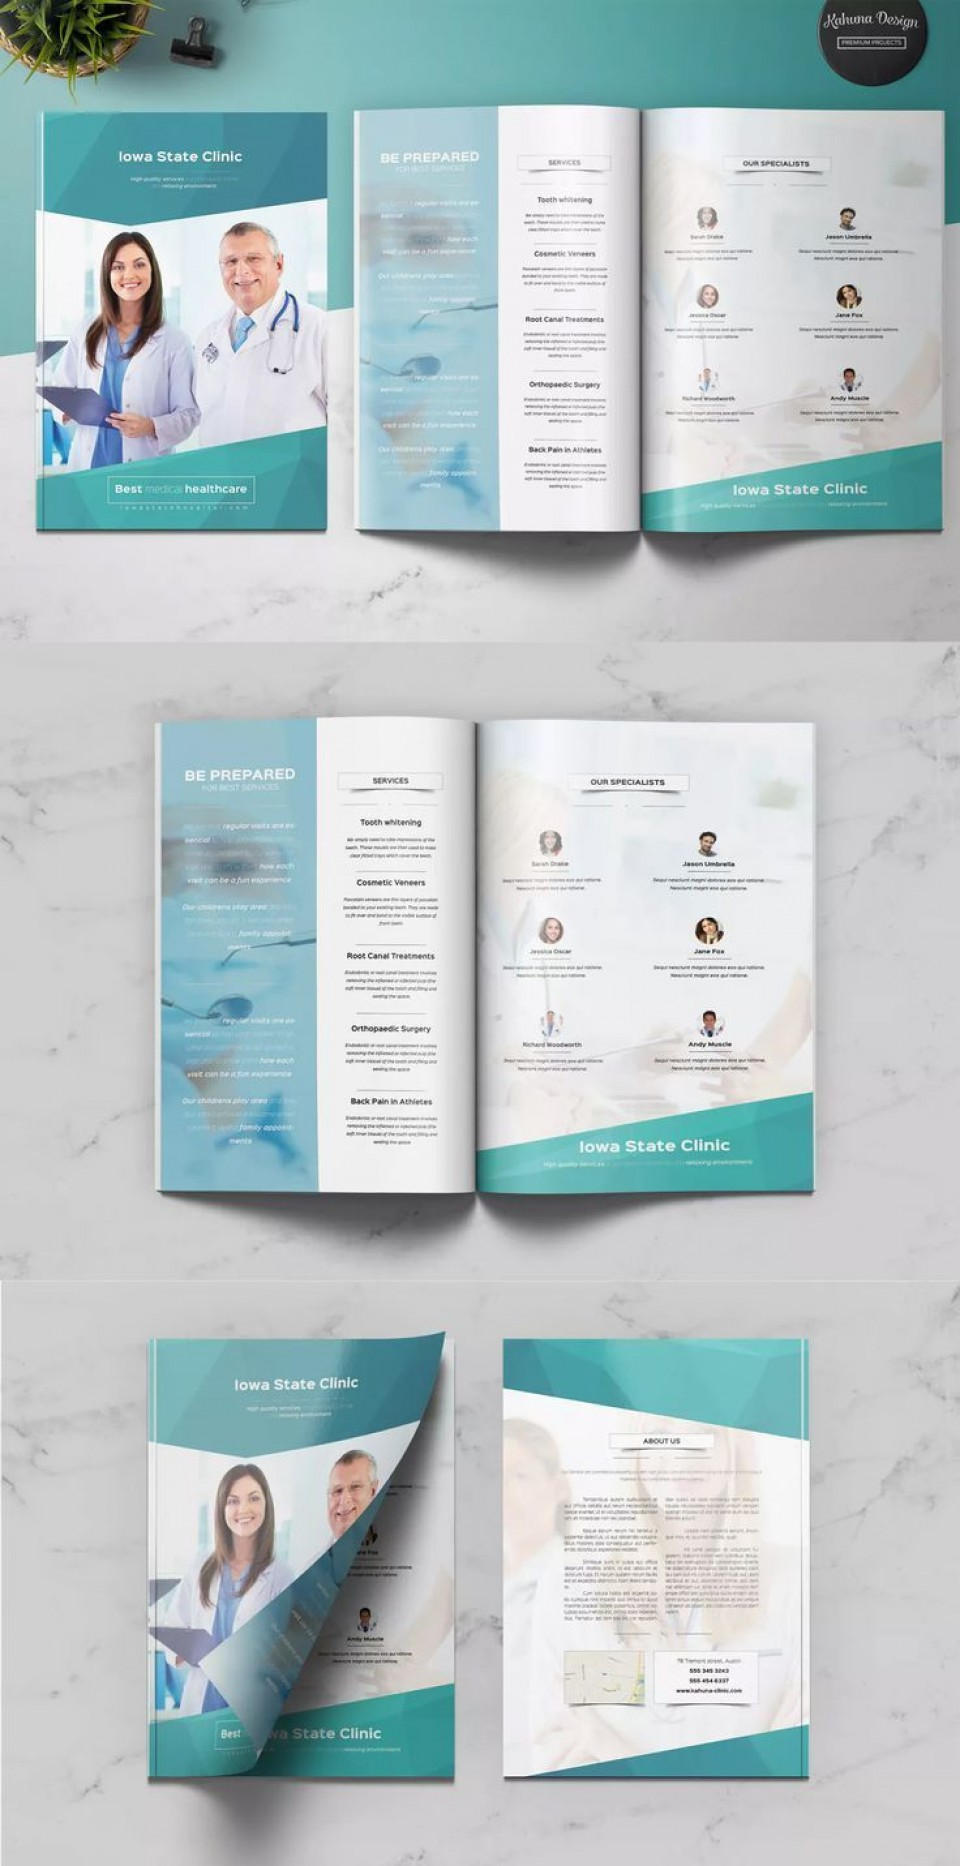 005 Fascinating Download Brochure Template For Word 2007 Highest Clarity 960